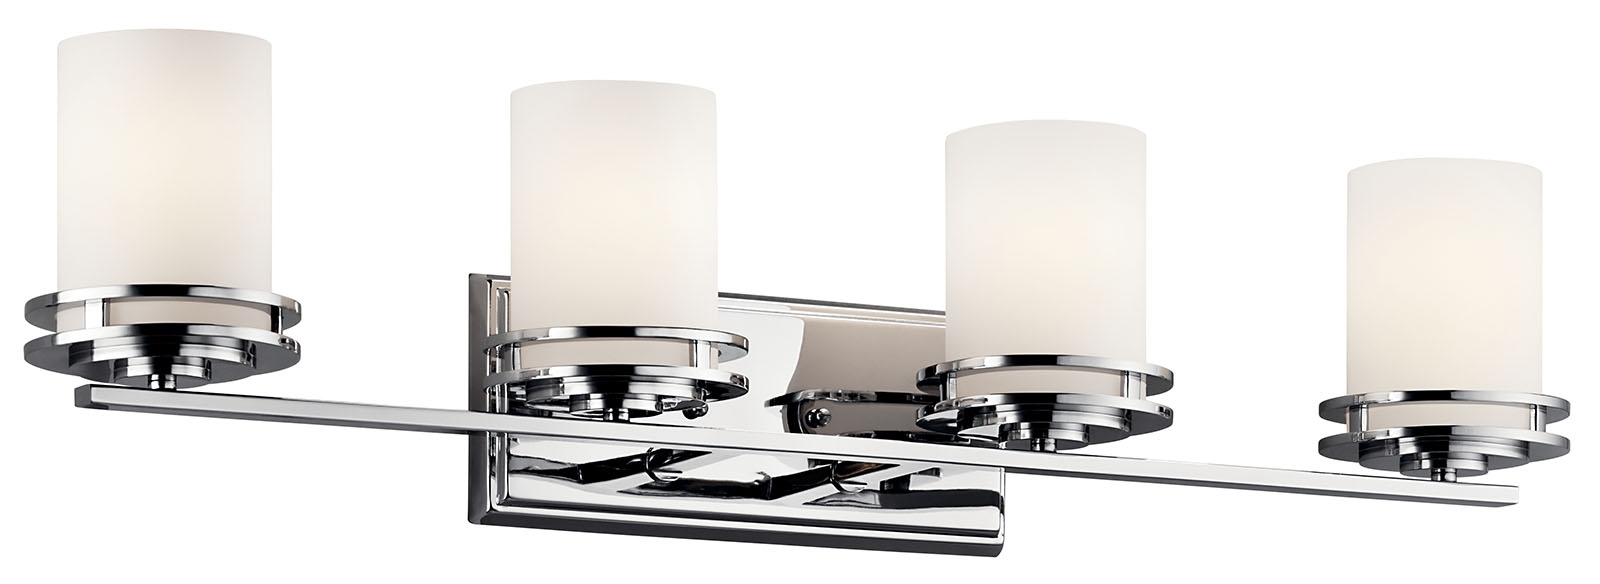 Project Source 6-Light-Bulbs Chrome Vanity Light Bar 36-in Wall Mounted Fixture